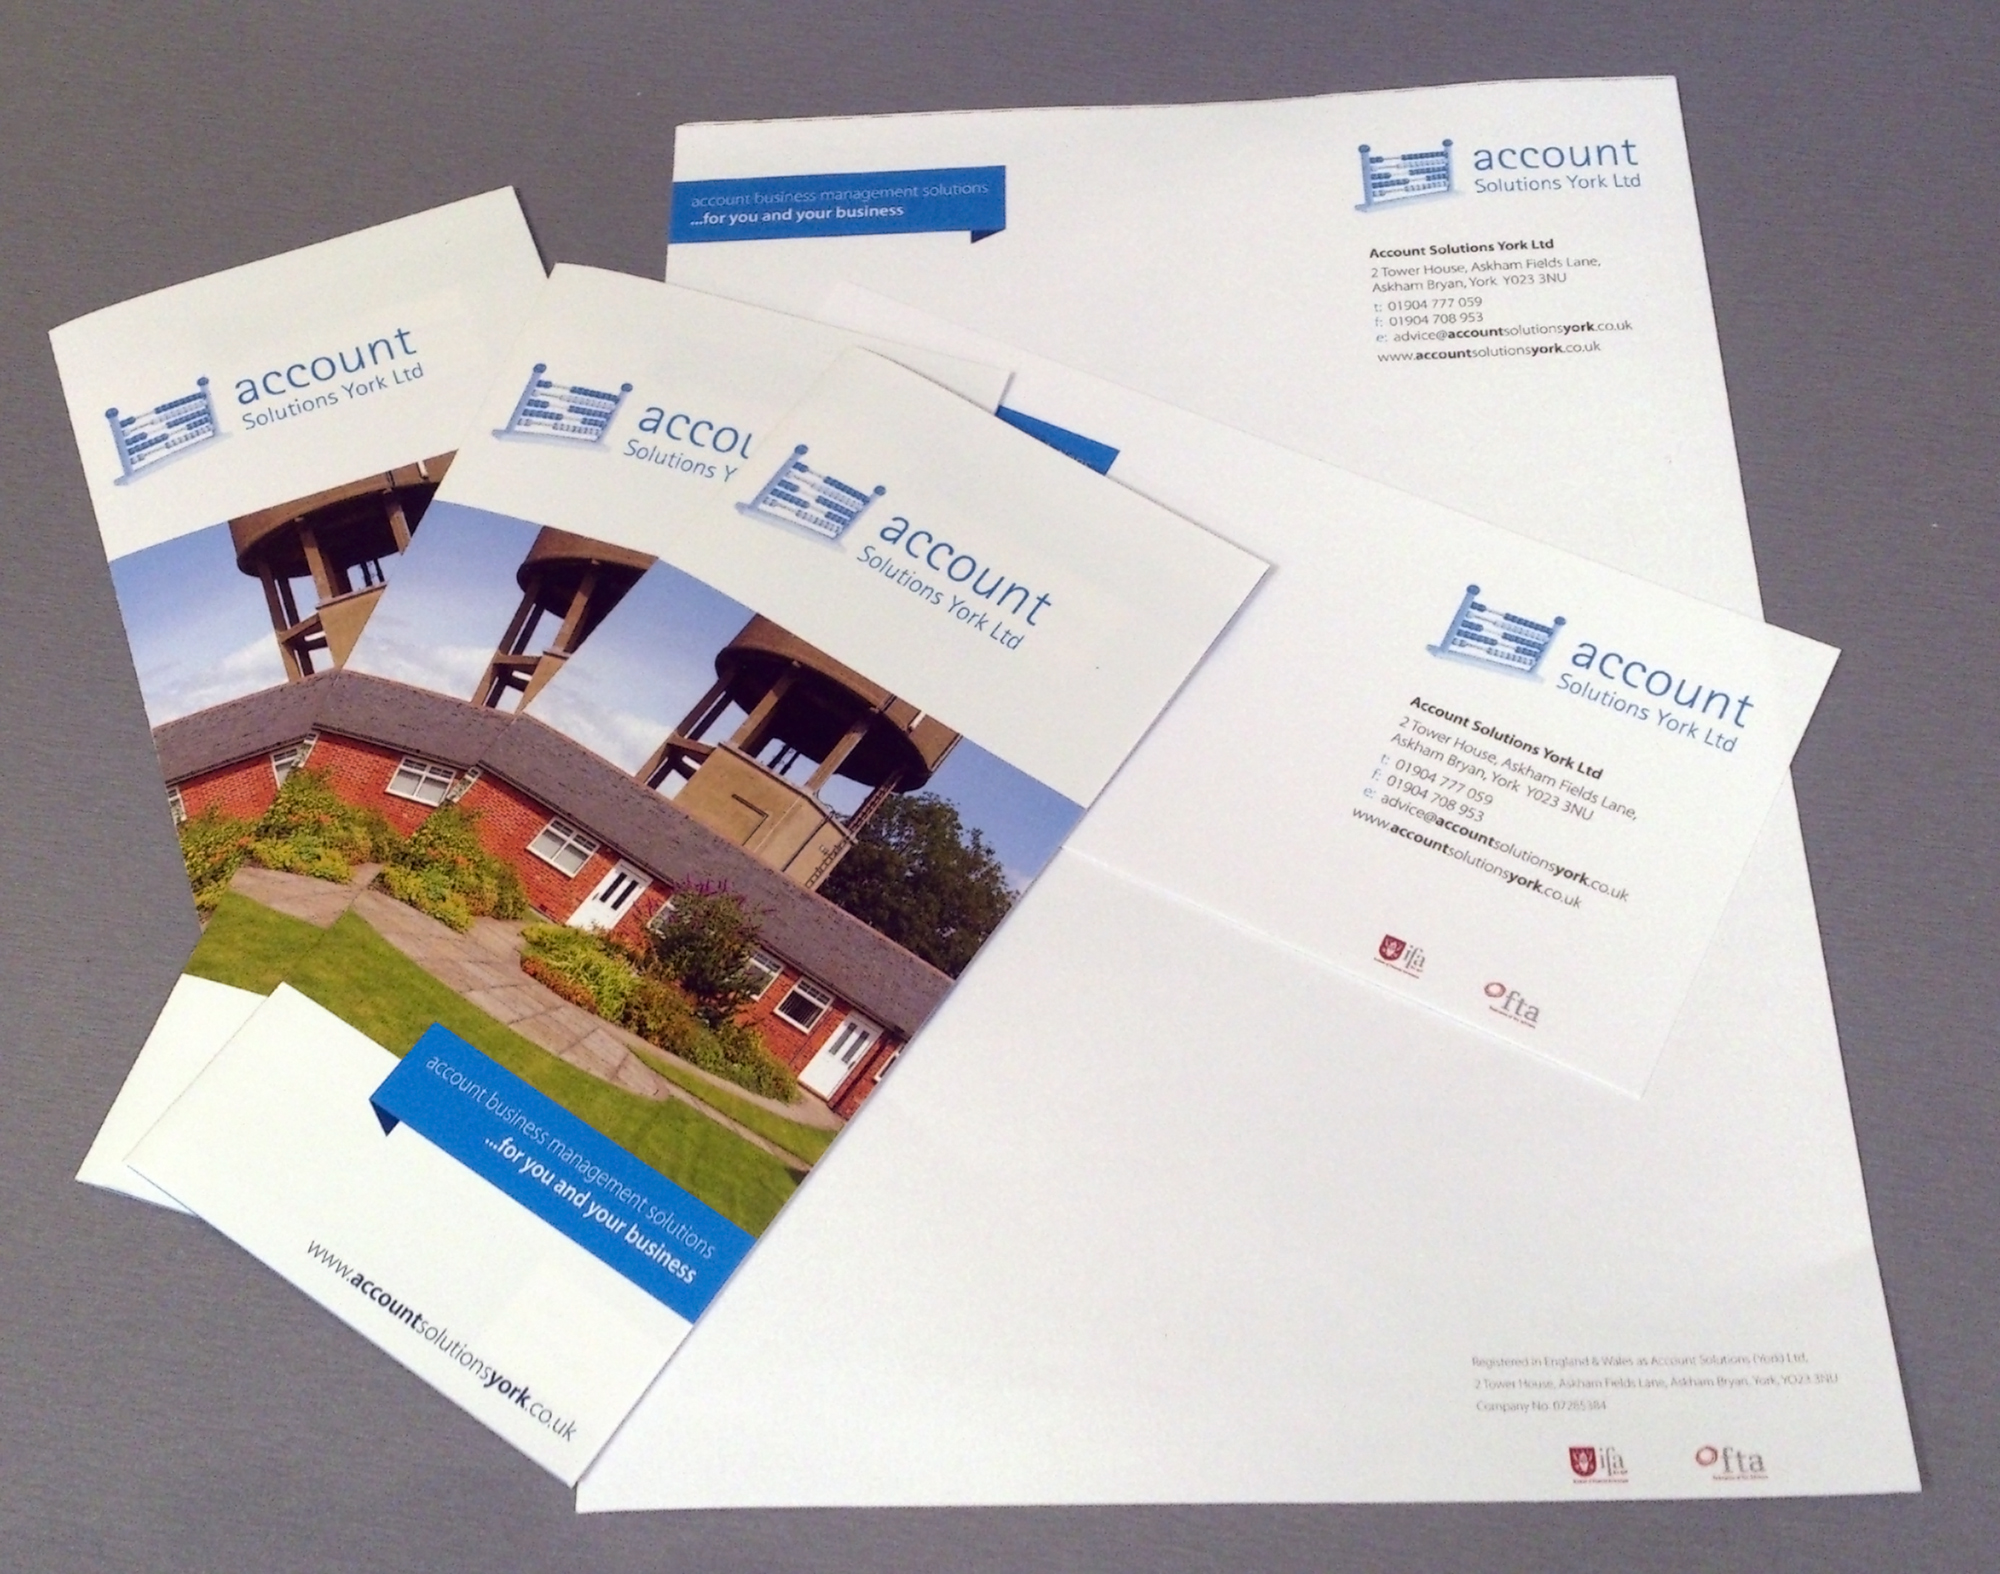 Account Solution brochures and stationery